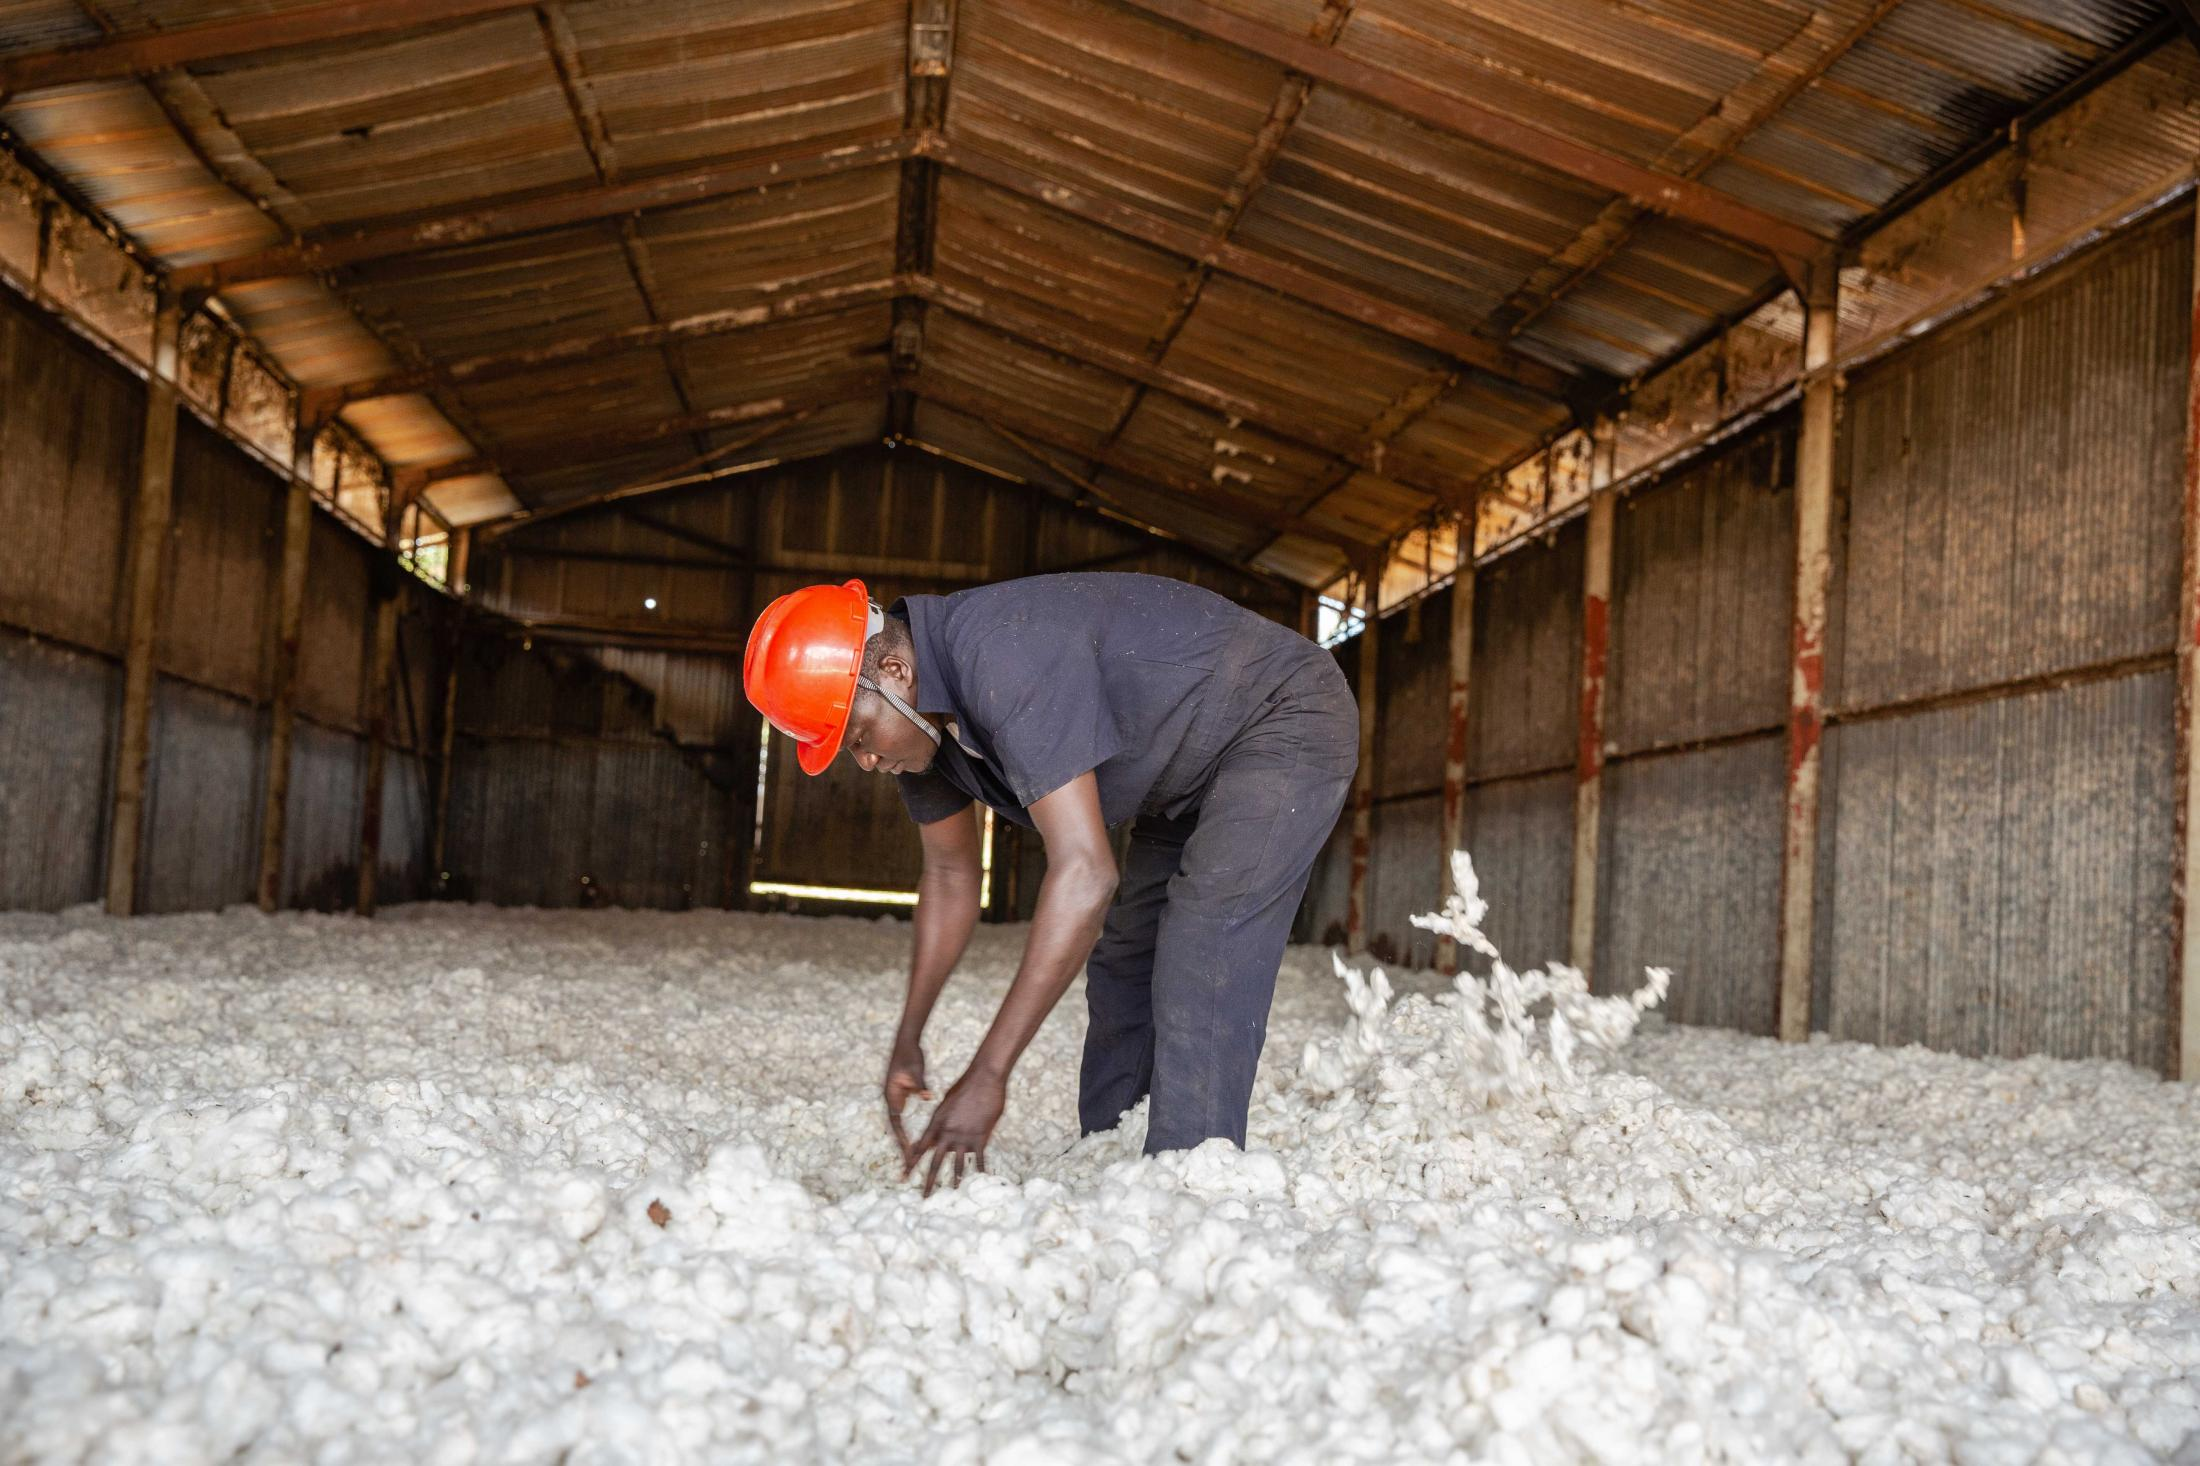 Steve G, an employee at Gulu Agricultural Development Association sifts through the cotton as it's kept to dry in a warehouse before processing. For Caritas International.